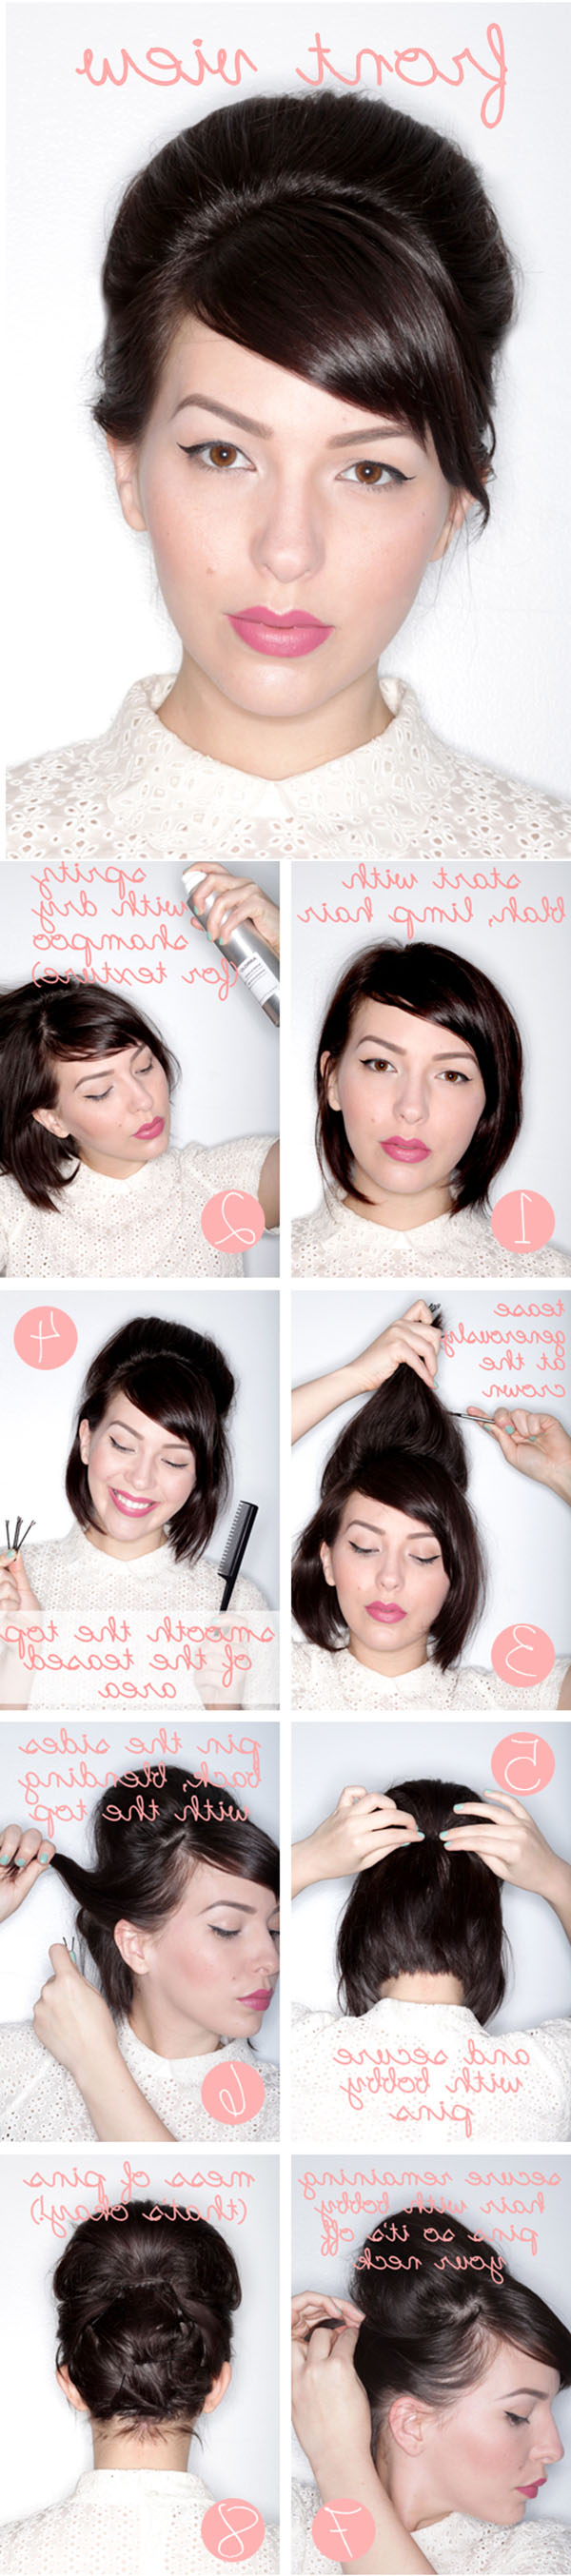 Elegant Hairstyles For Special Occasions Regarding Short Hairstyles For Special Occasions (View 18 of 25)